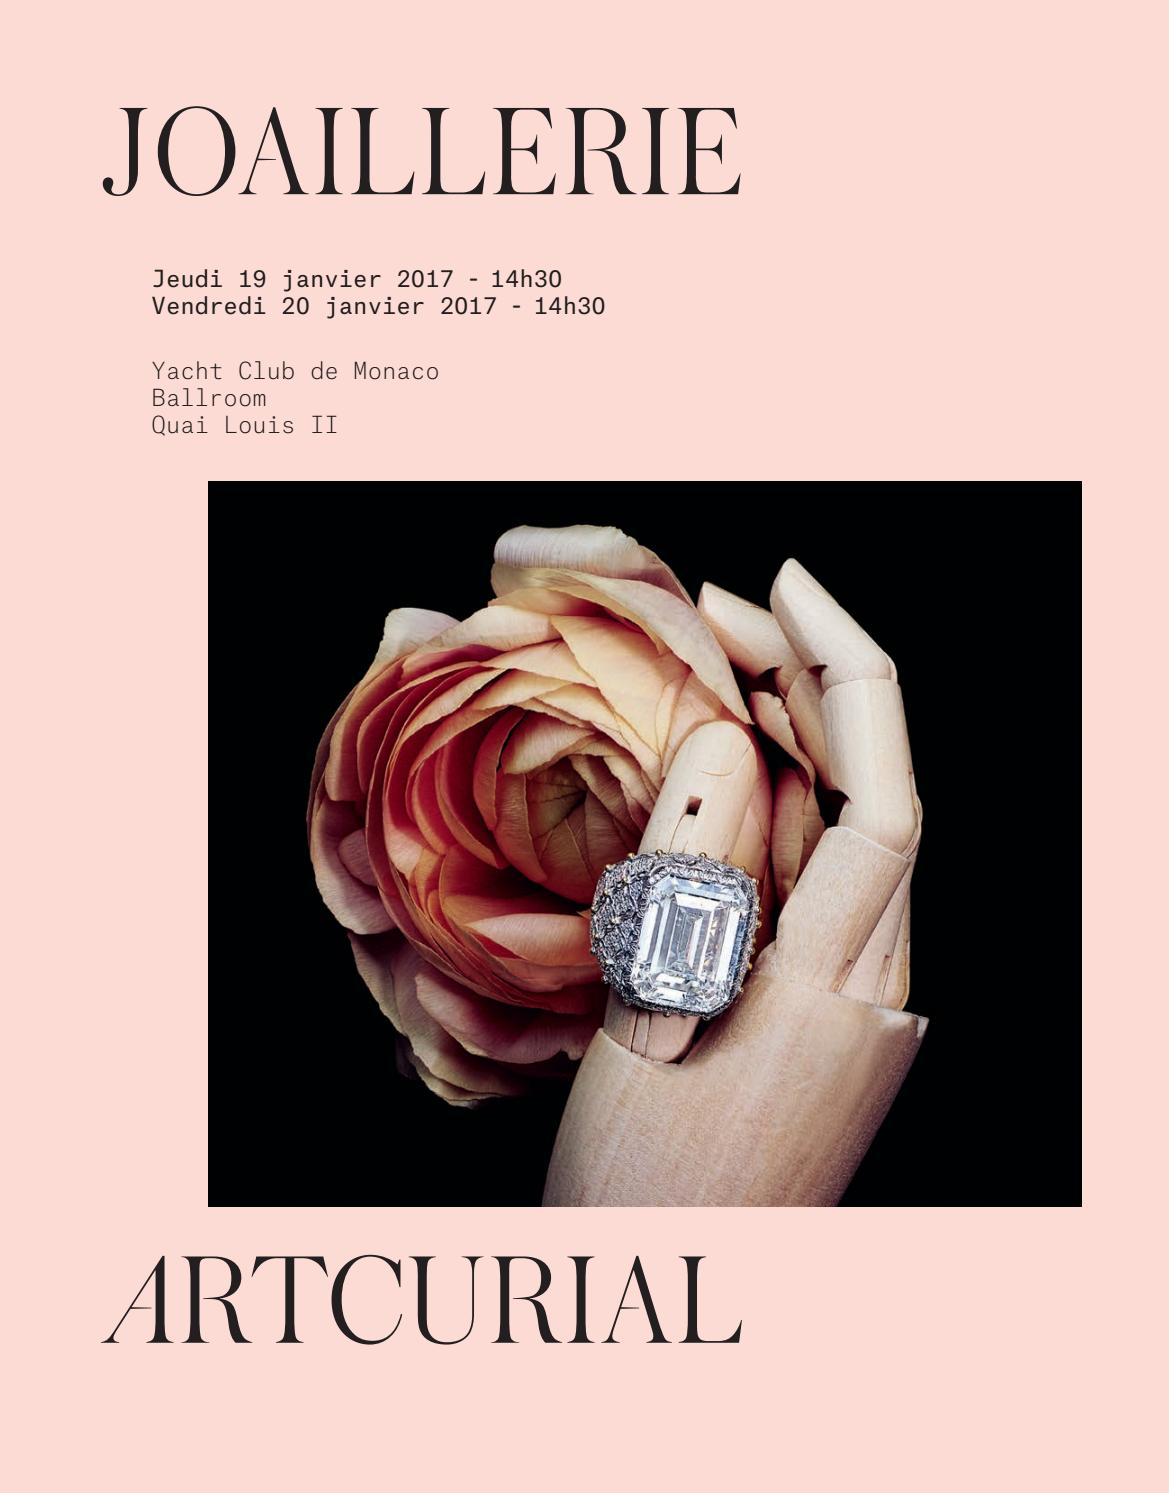 20b53b74d7f9 Joaillerie by Artcurial - issuu